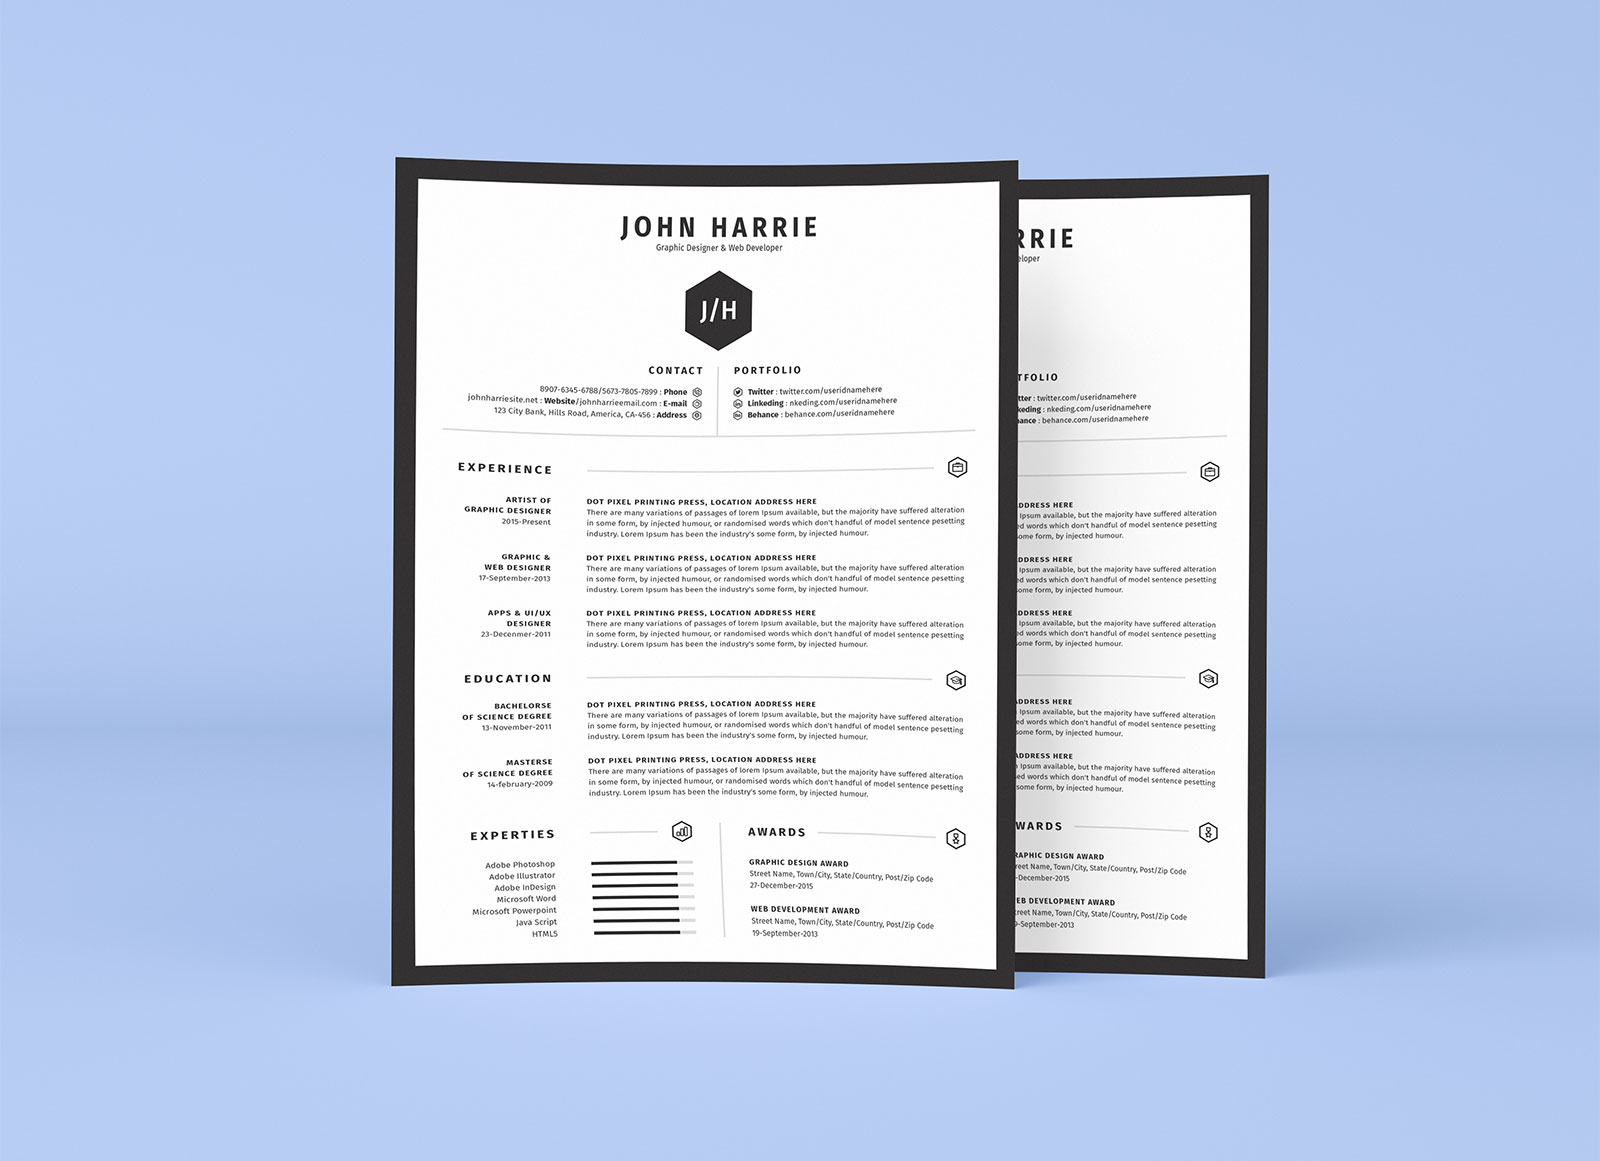 Free Clean Resume CV & Cover Letter Template in Word, PSD ...